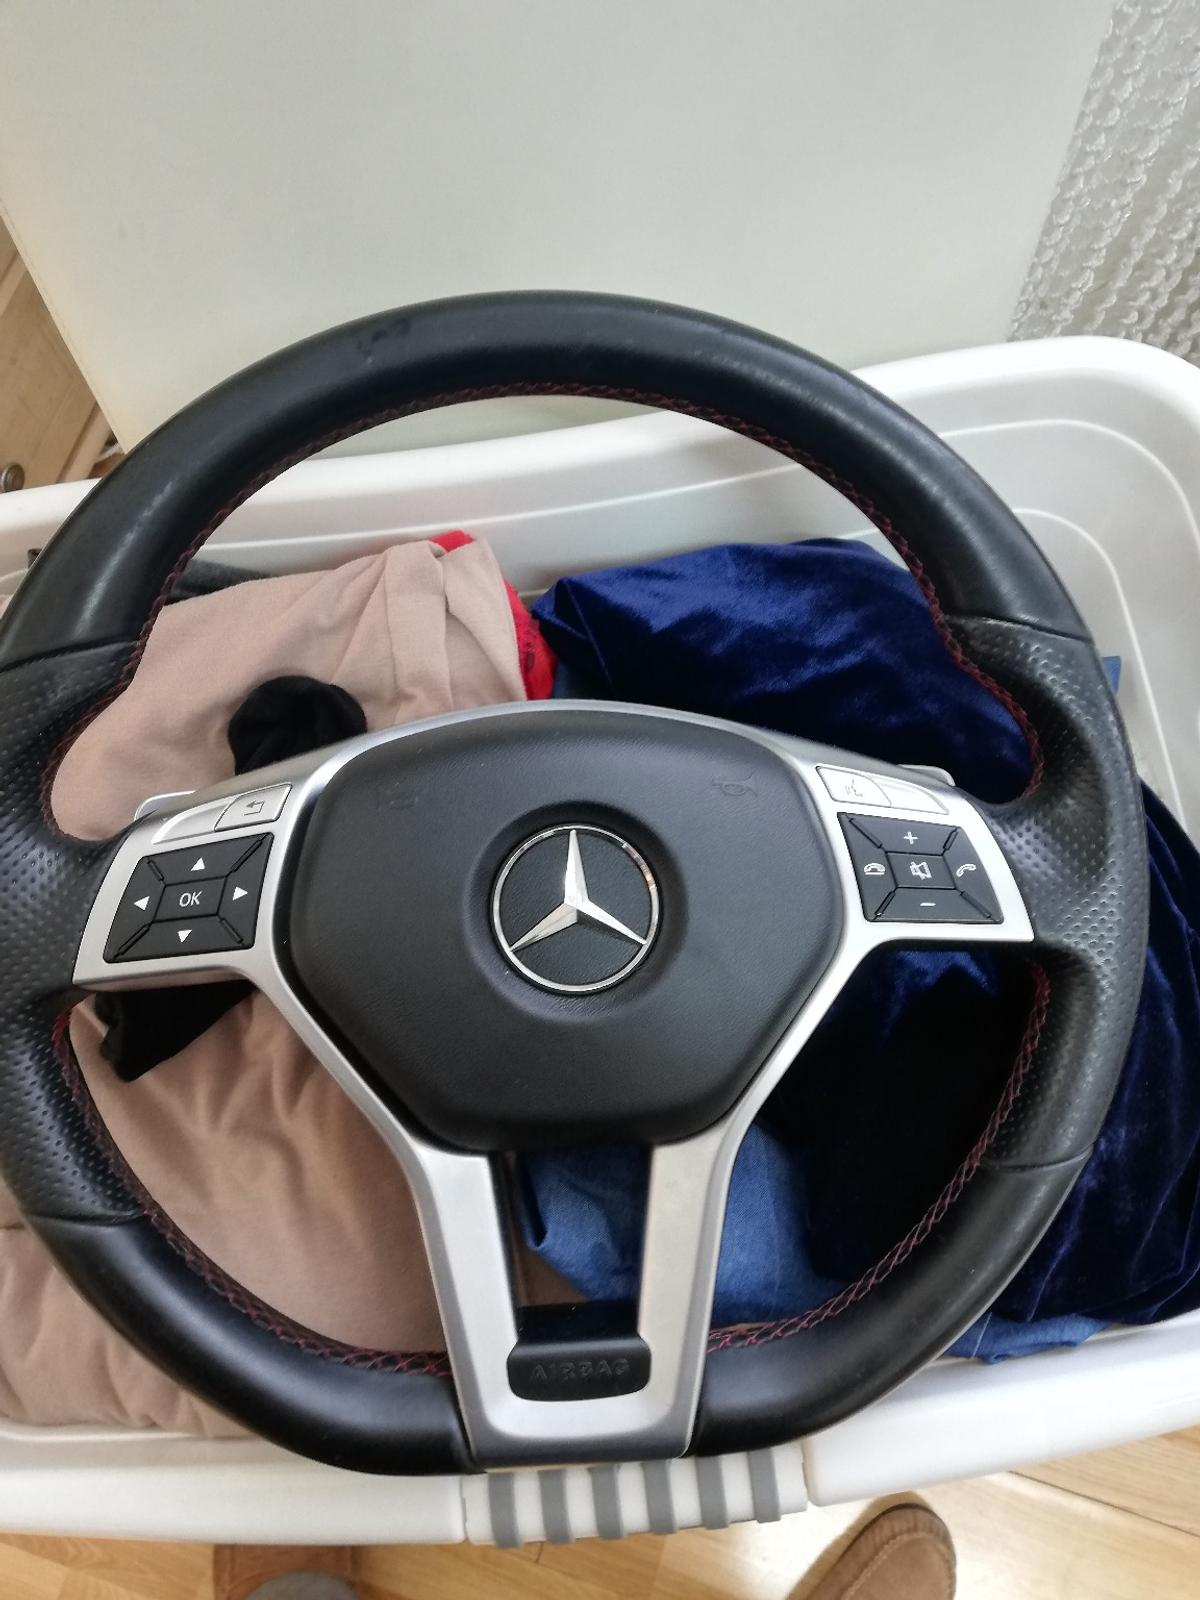 Steering Wheel Mercedes Amg For Sale In E12 Newham For 295 00 For Sale Shpock